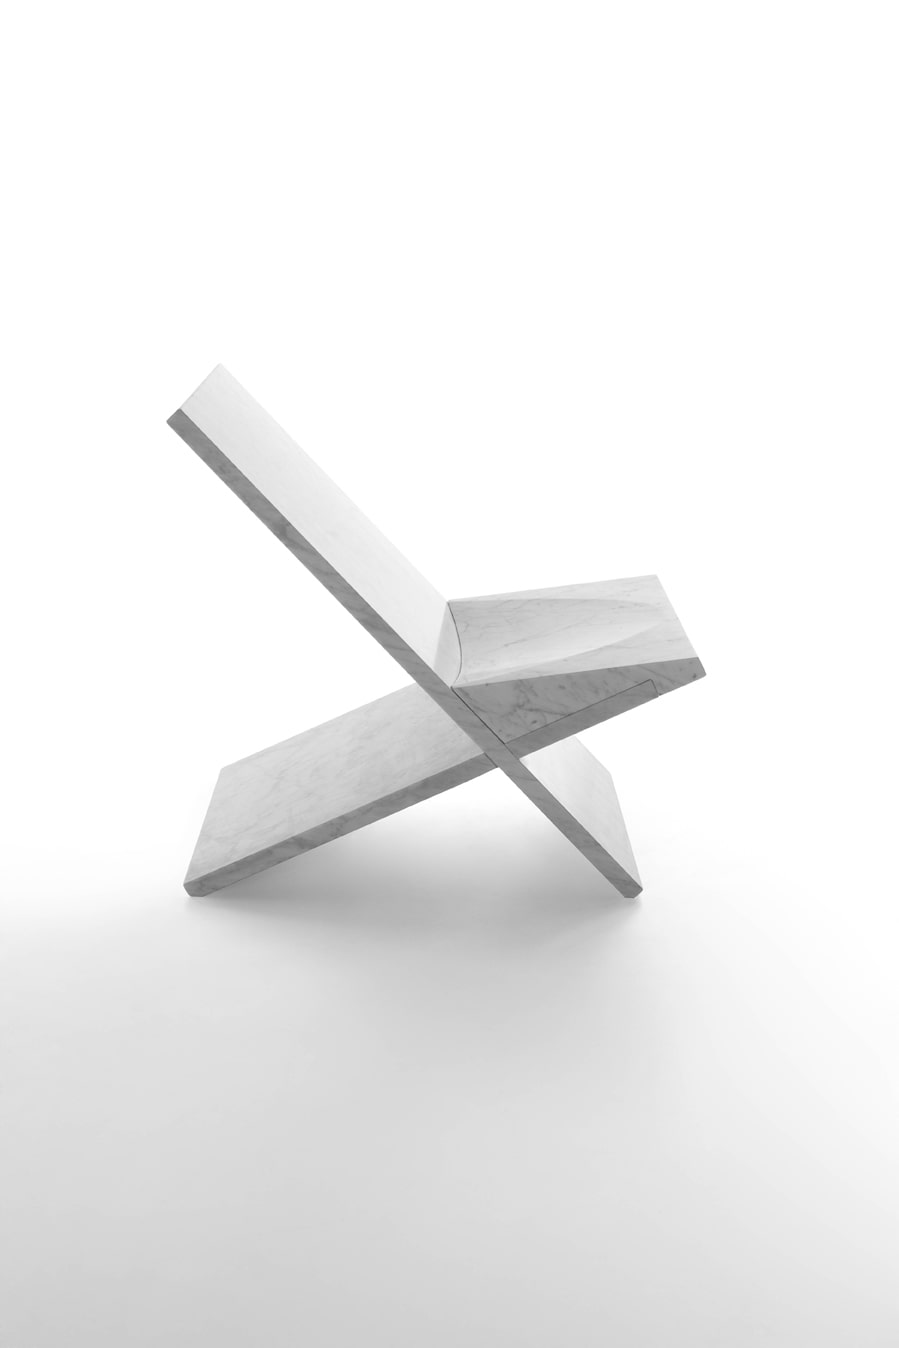 Sultan Chair By Konstantin Grcic In White Carrara Marble, Matt Polished  Finish.